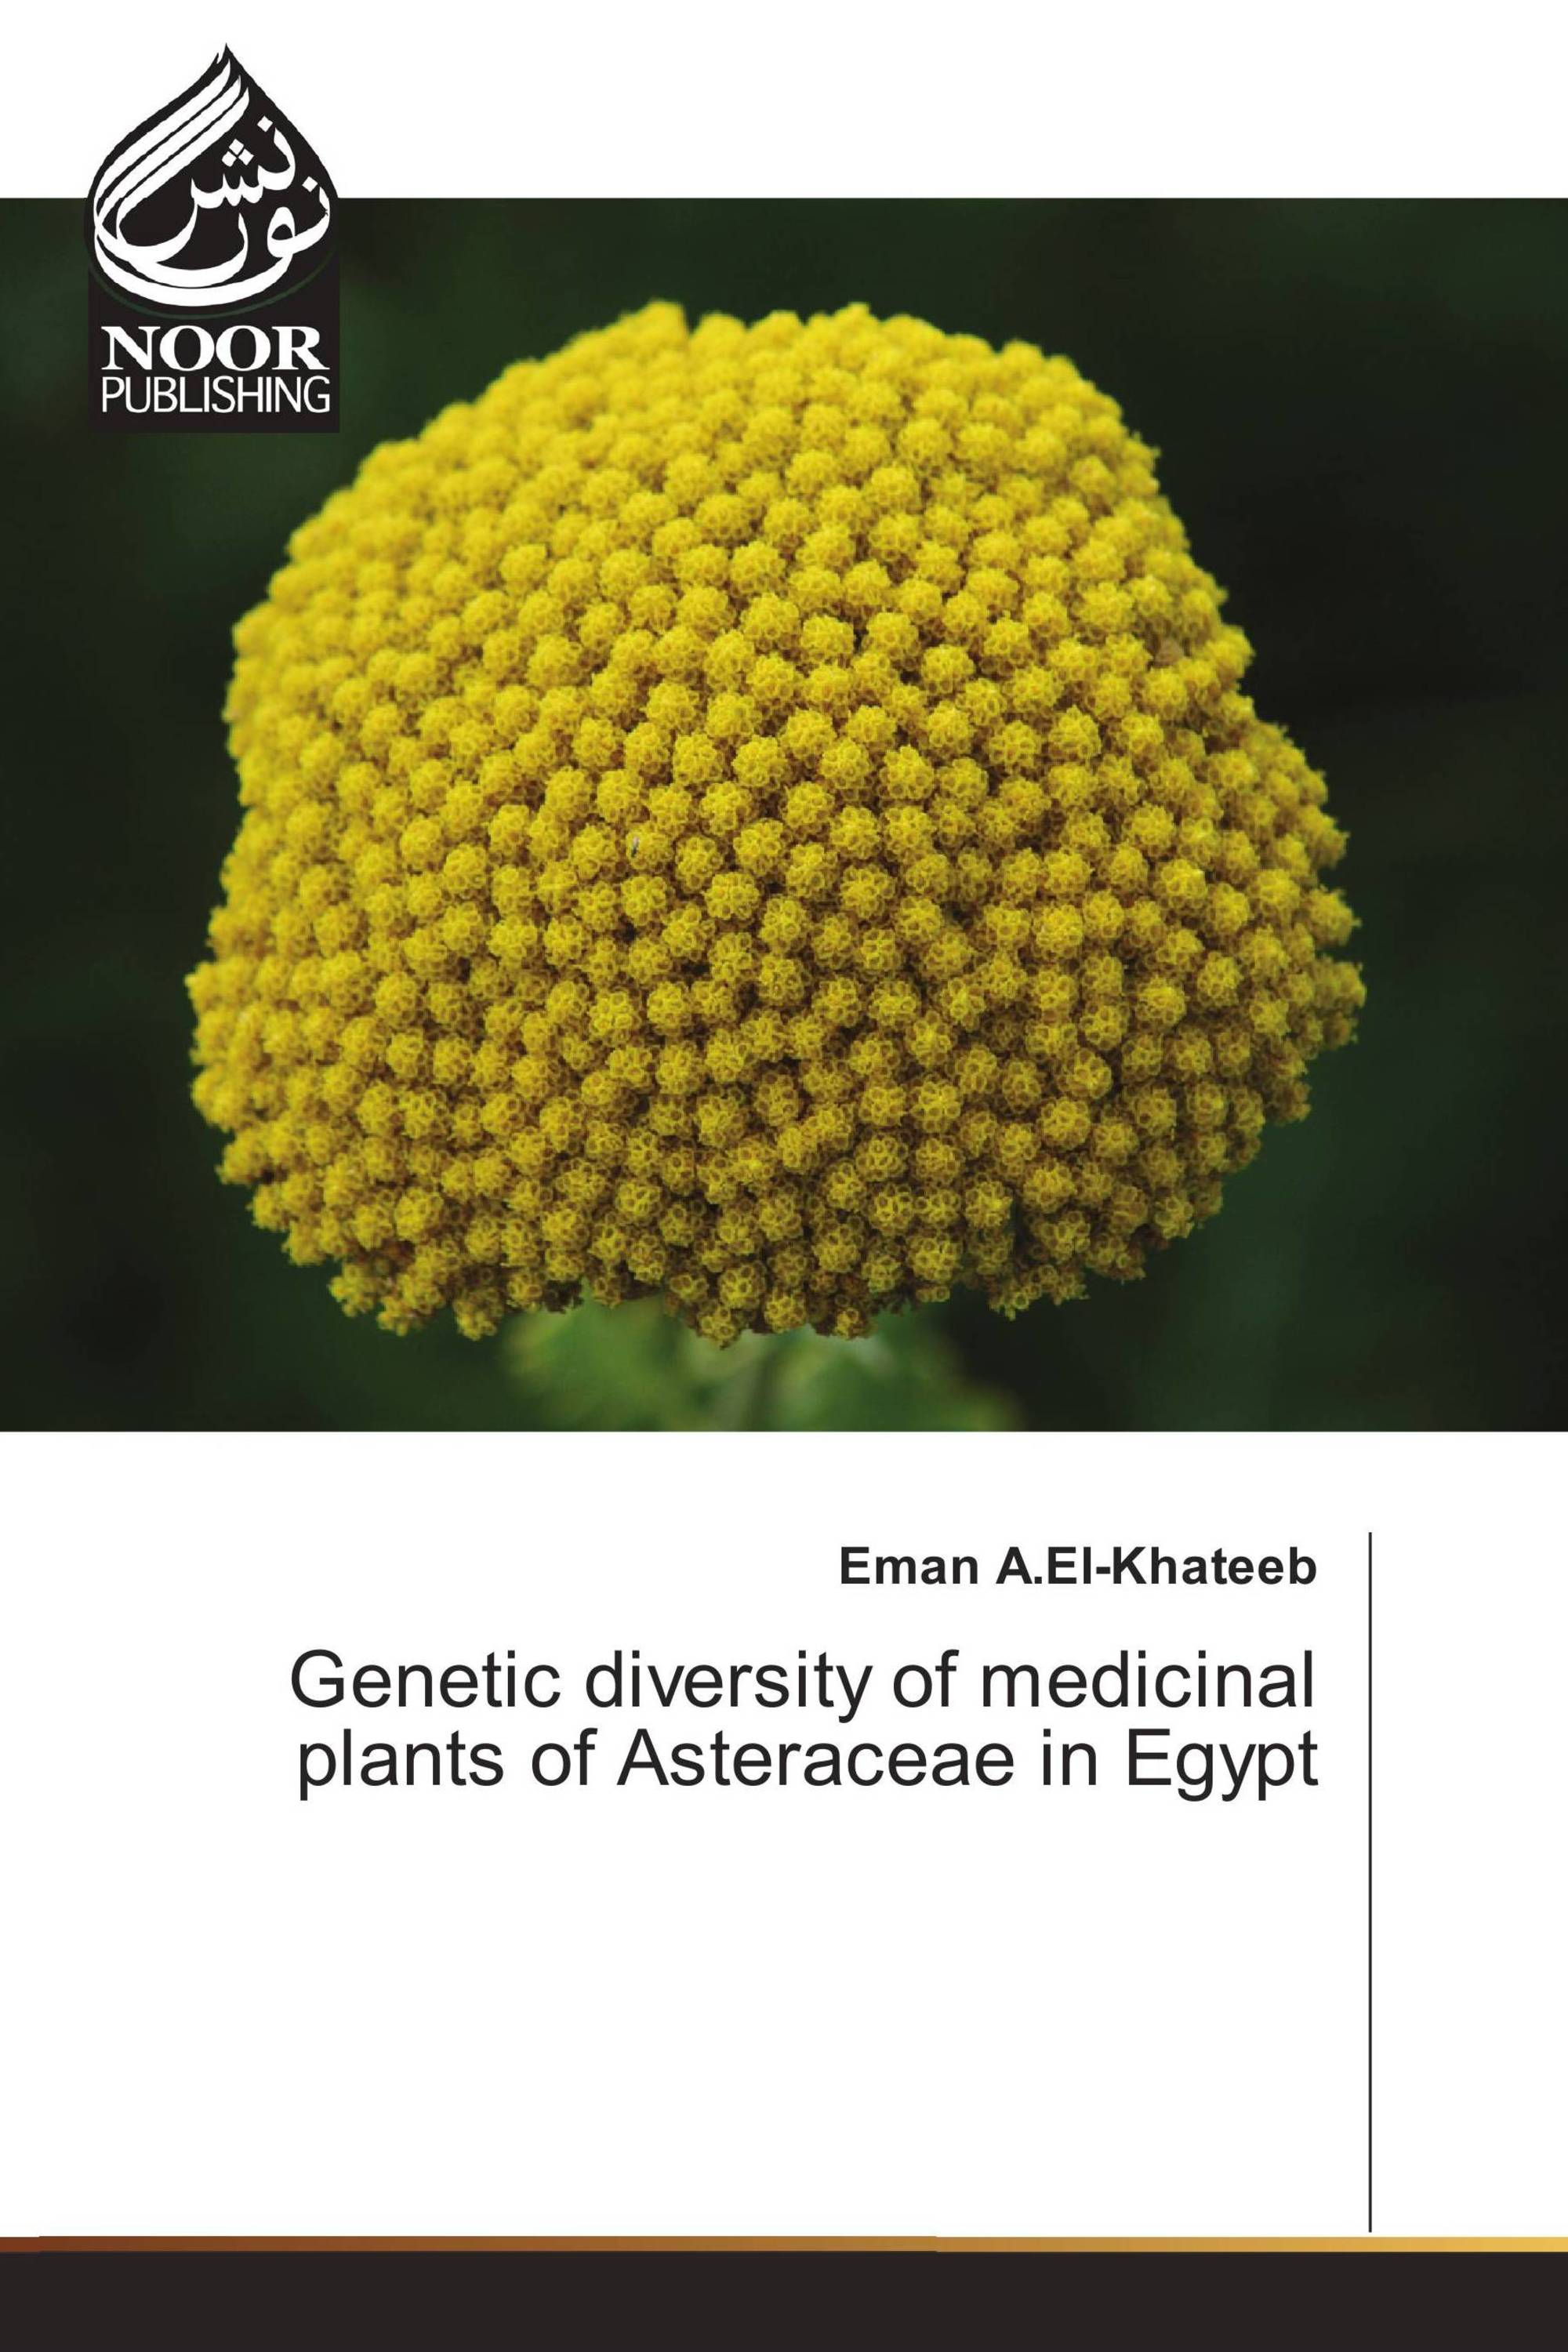 Genetic diversity of medicinal plants of Asteraceae in Egypt